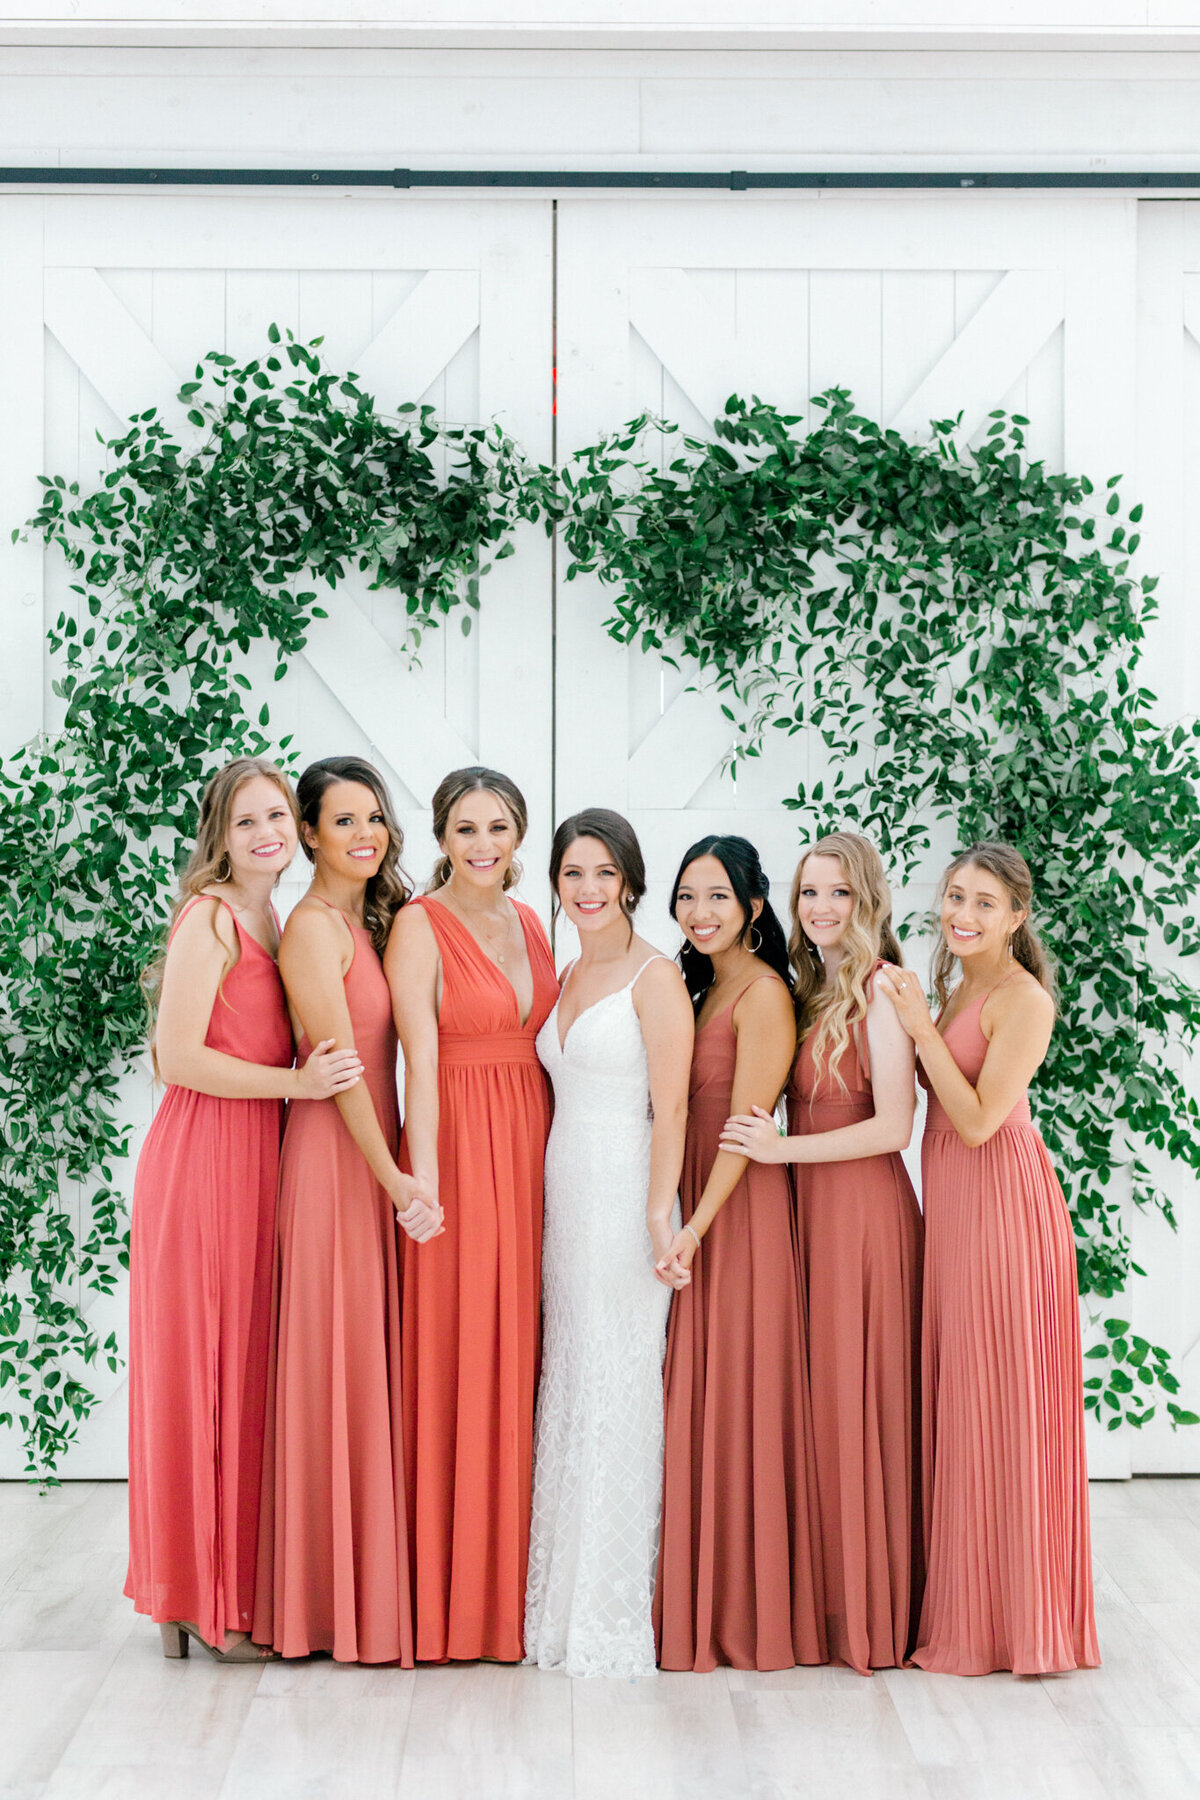 Anna & Billy's Wedding at The Nest at Ruth Farms | Dallas Wedding Photographer | Sami Kathryn Photography-129